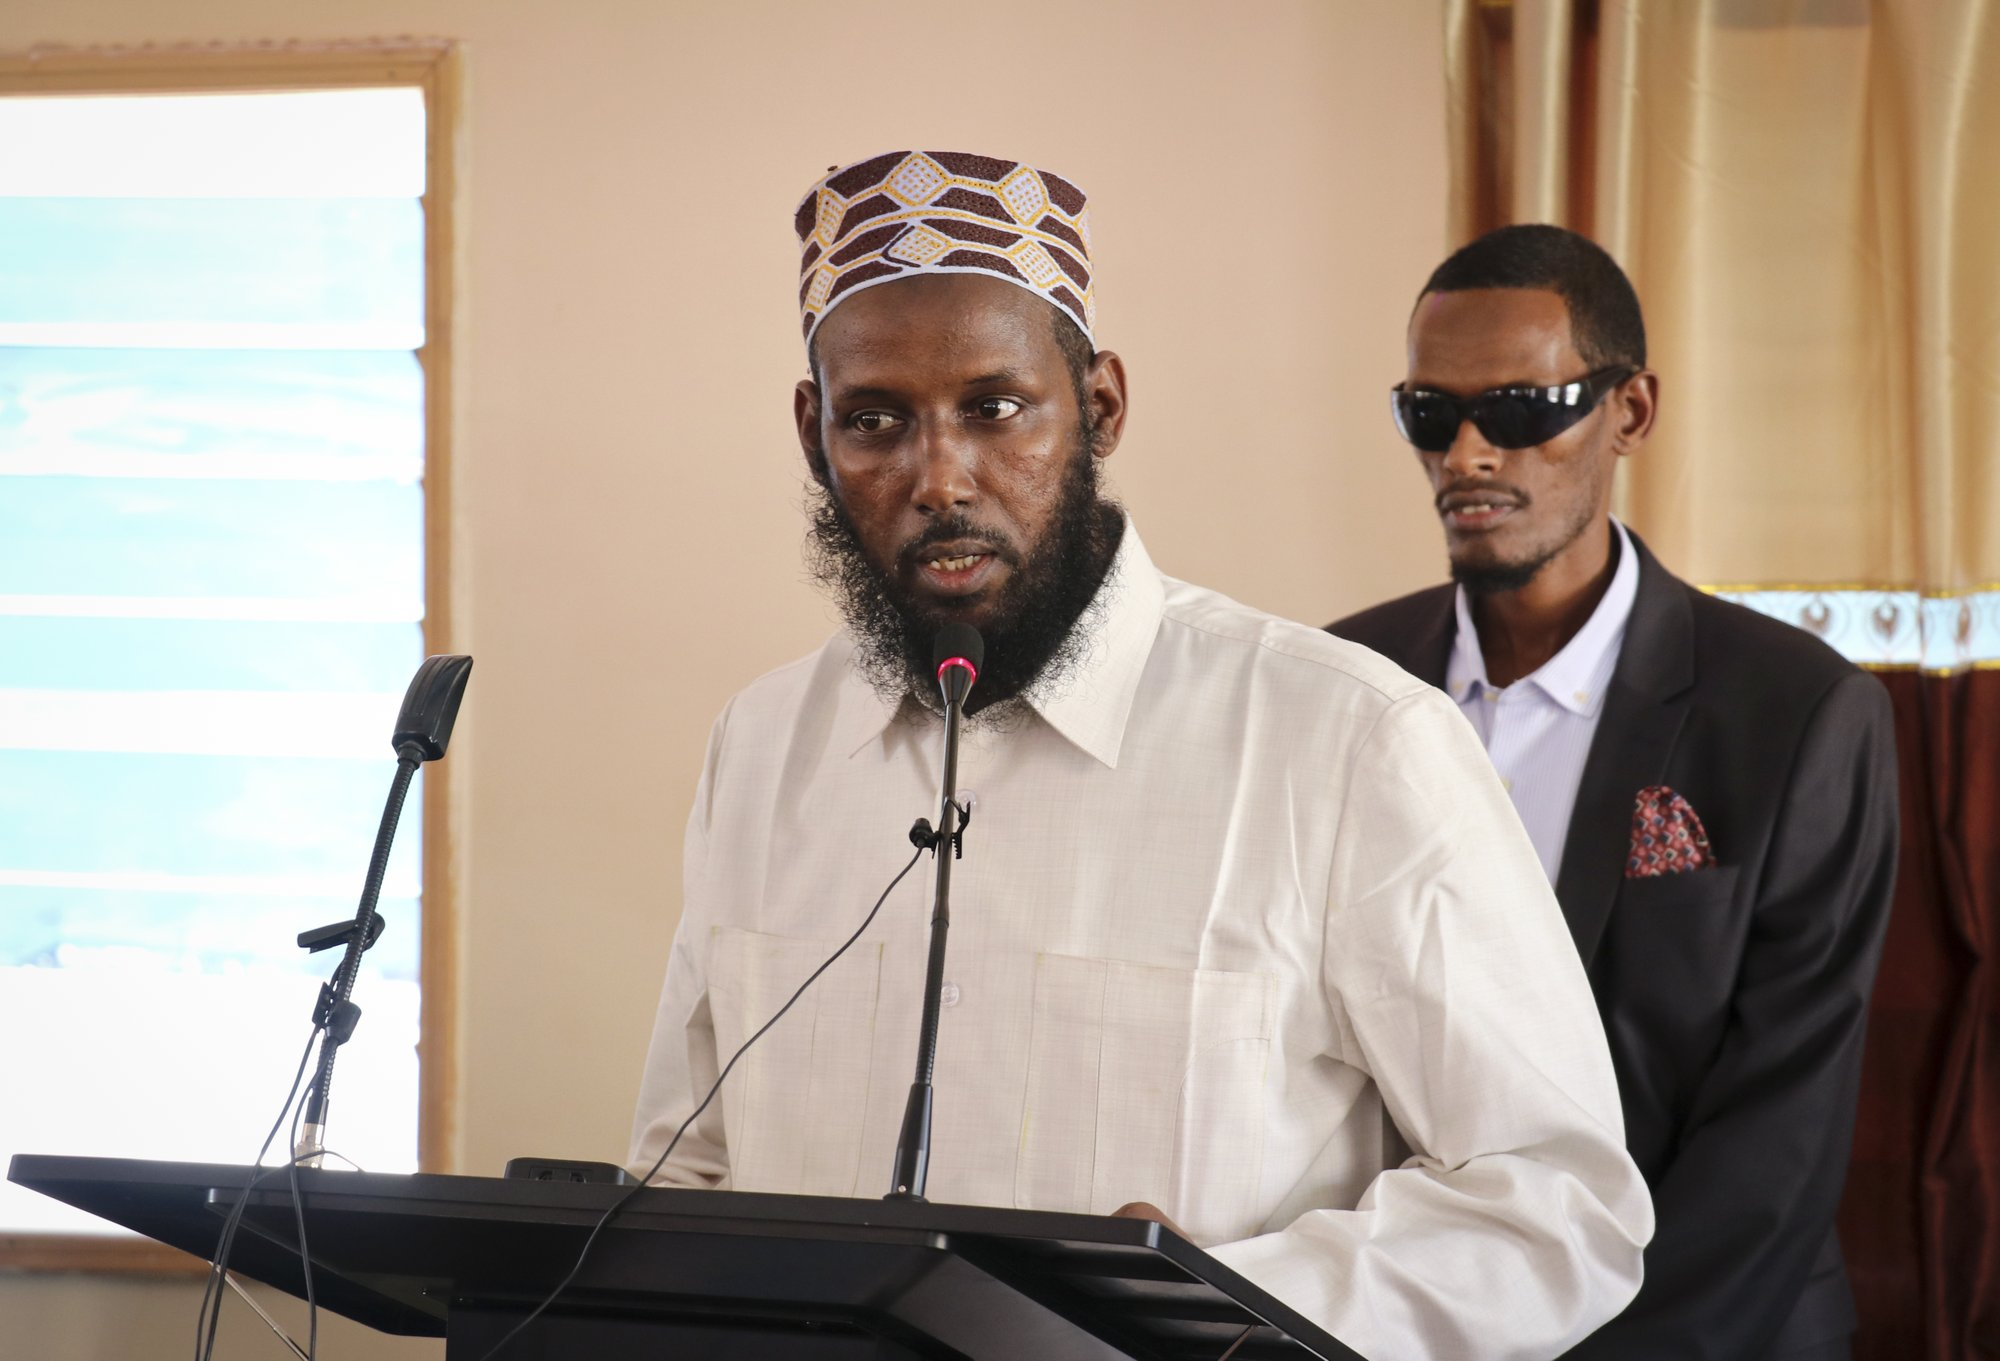 Al-Shabab's former No. 2 leader runs for office in Somalia